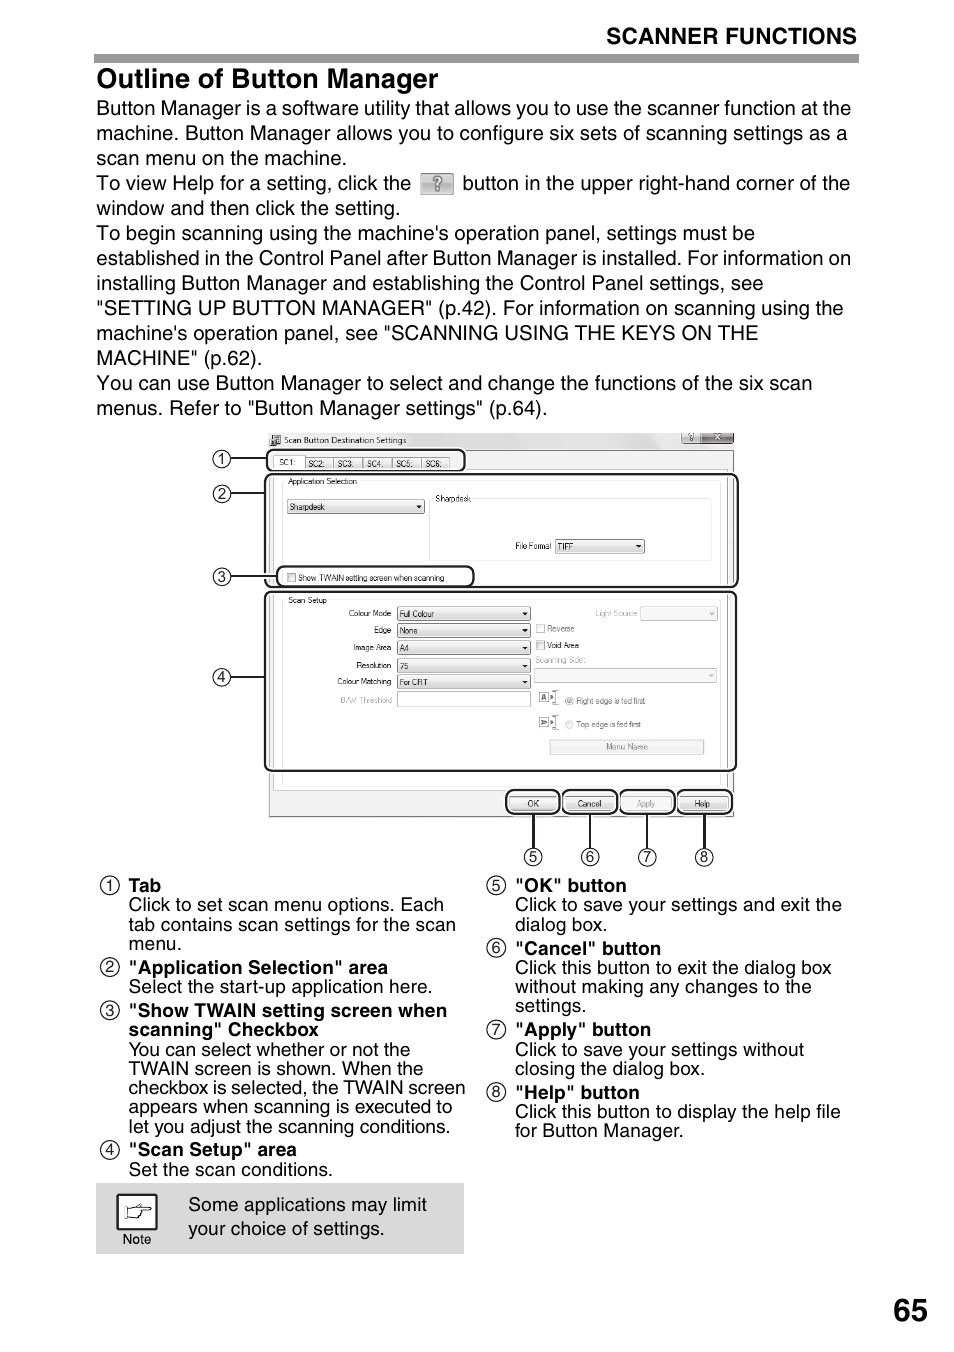 Outline of button manager, Scanner functions | Sharp MX